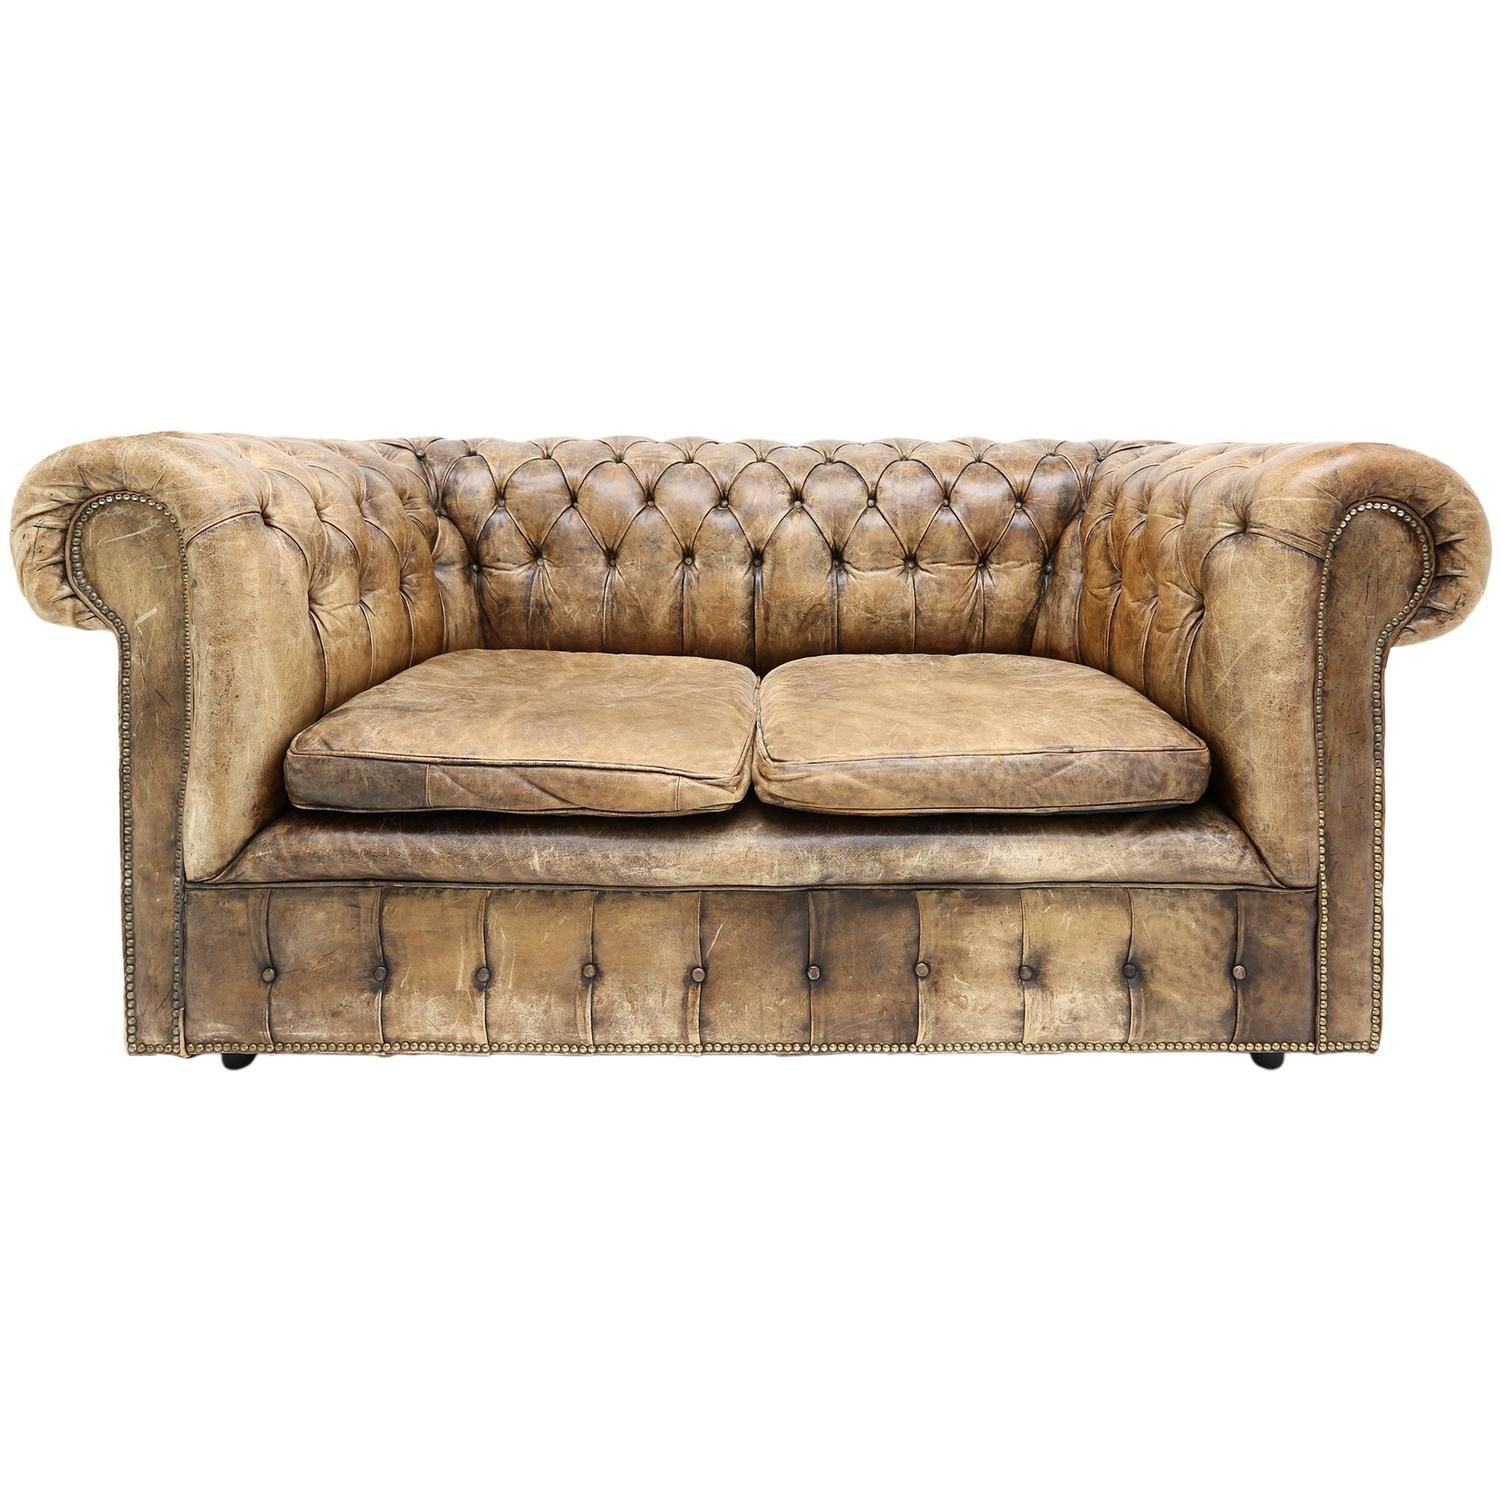 Chesterfield Sofa at 1stdibs : 4321523z from www.1stdibs.com size 1500 x 1500 jpeg 178kB